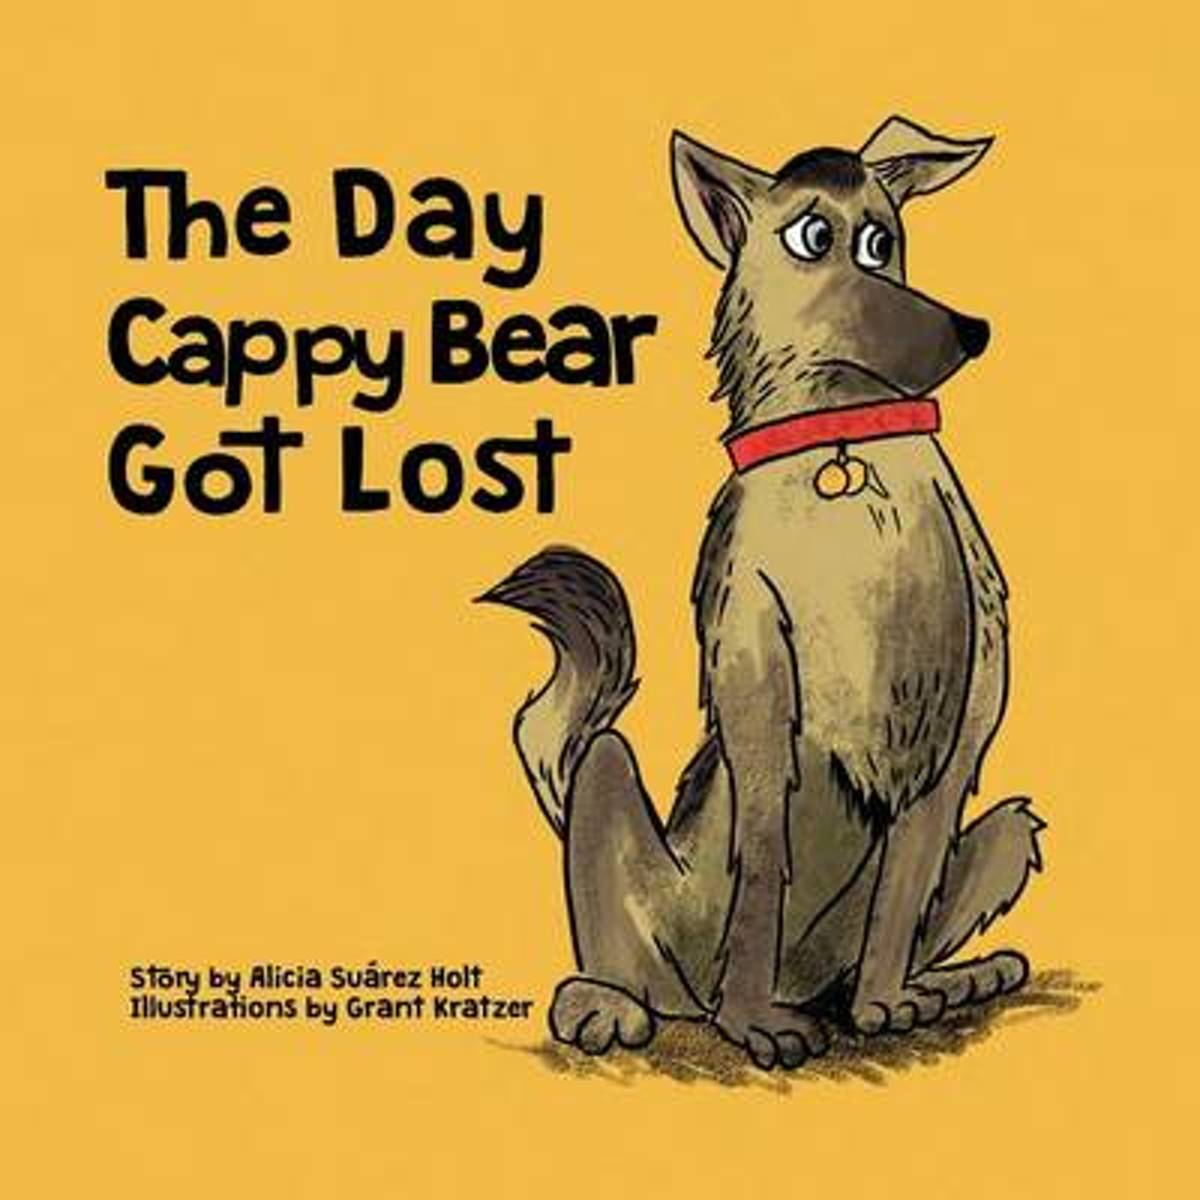 The Day Cappy Bear Got Lost